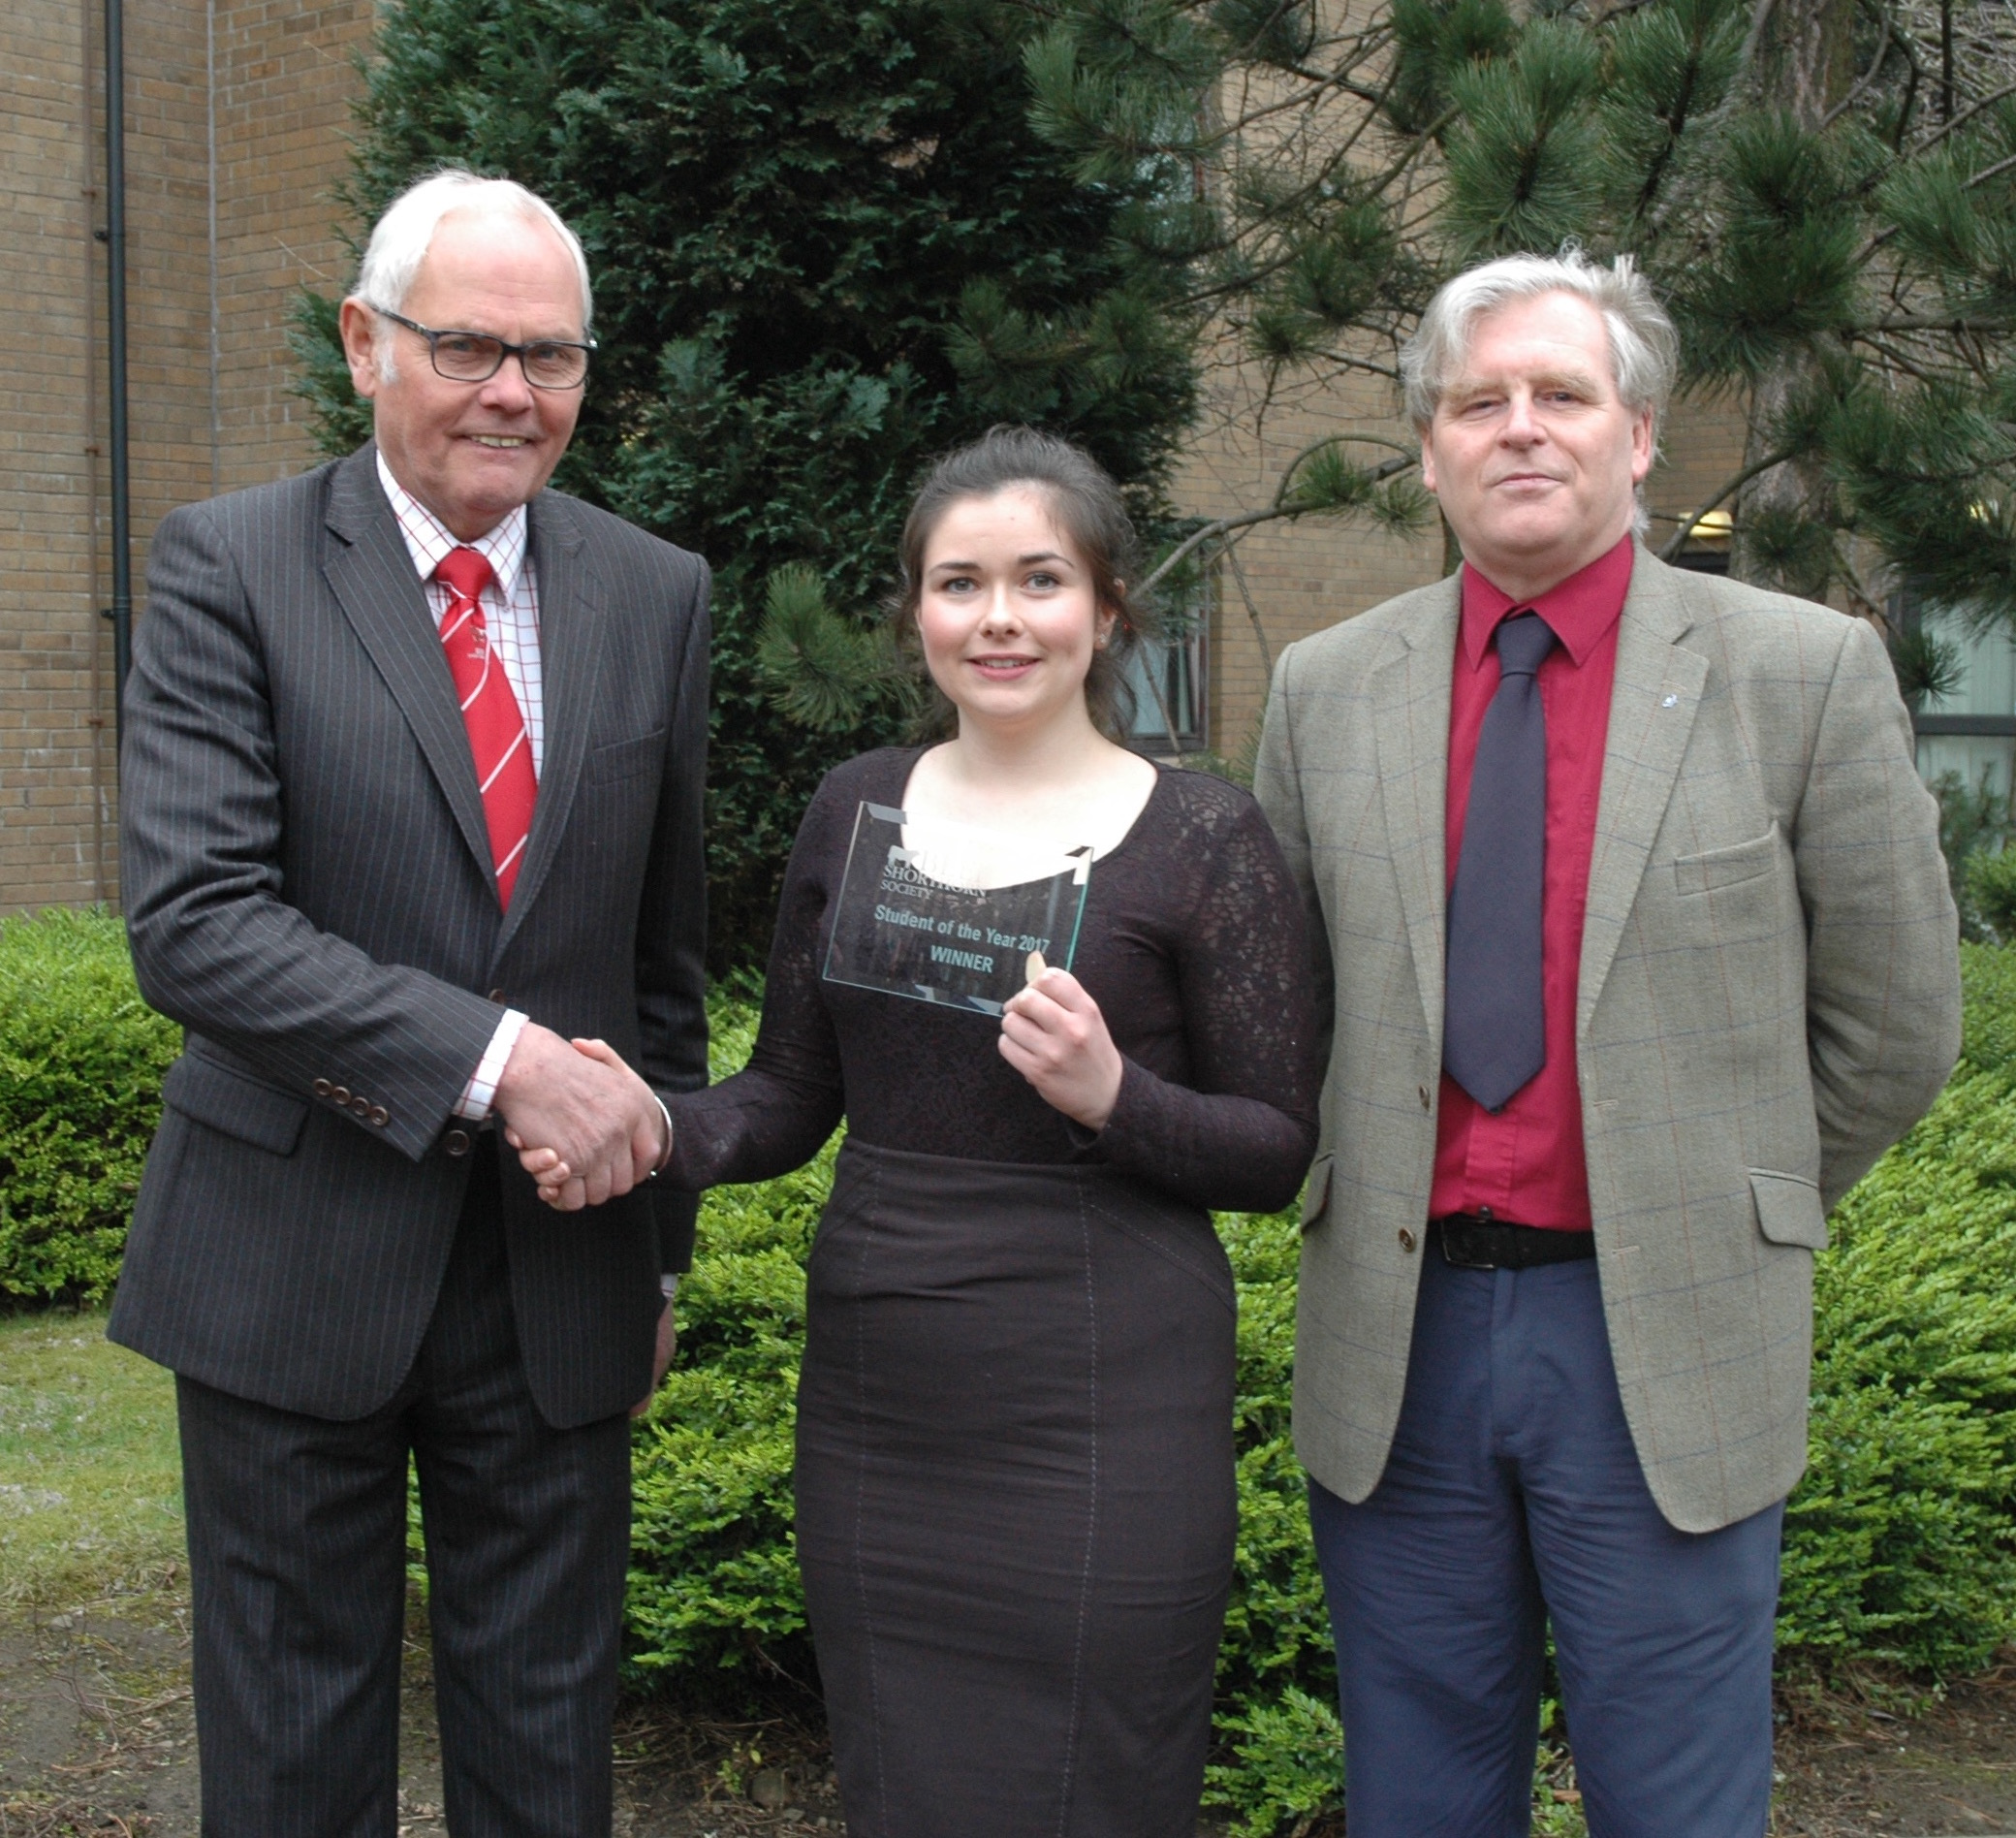 Beef Student of the Year winner, Orla Kelly receives her award from Beef Shorthorn Society's Geoff Riby and QMS' Stuart Ashworth